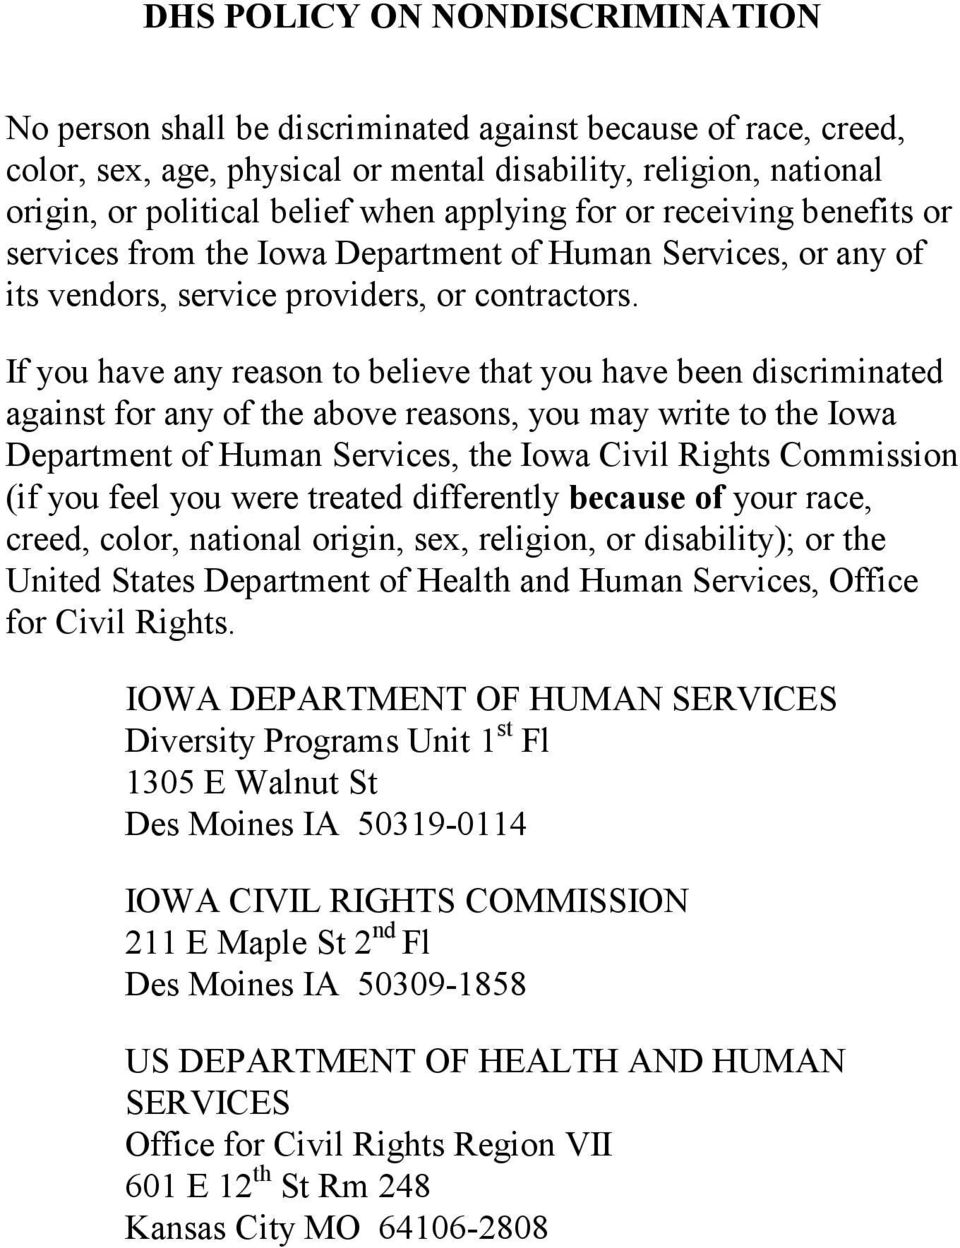 If you have any reason to believe that you have been discriminated against for any of the above reasons, you may write to the Iowa Department of Human Services, the Iowa Civil Rights Commission (if